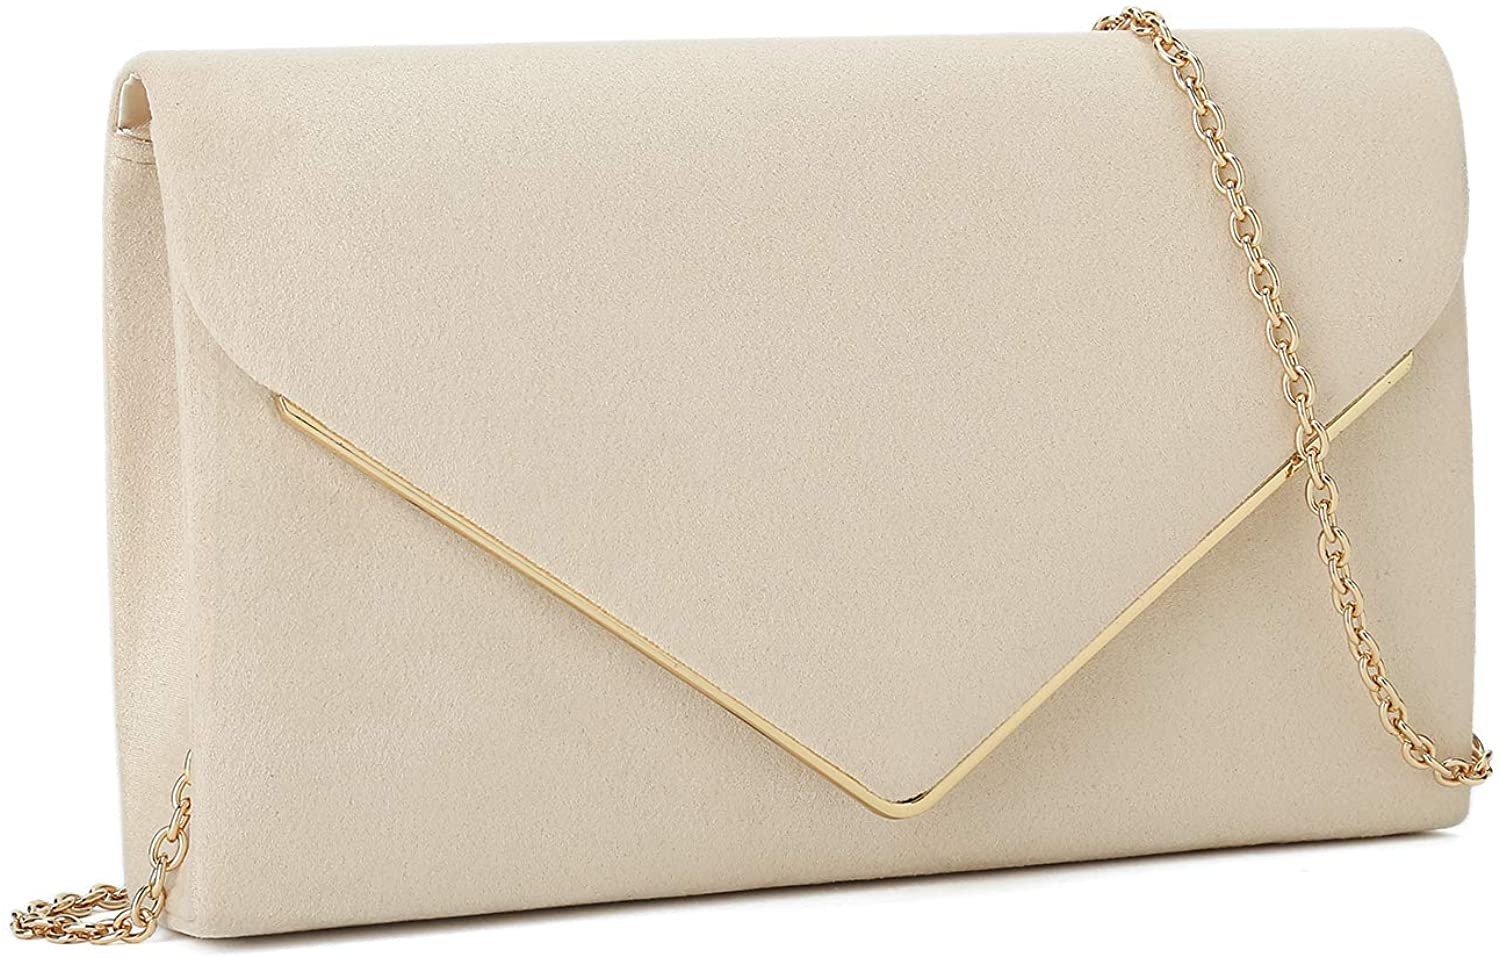 Charming Tailor Faux Suede Clutch Bag Elegant Metal Binding Evening Purse for Wedding/Prom/Black-Tie Events